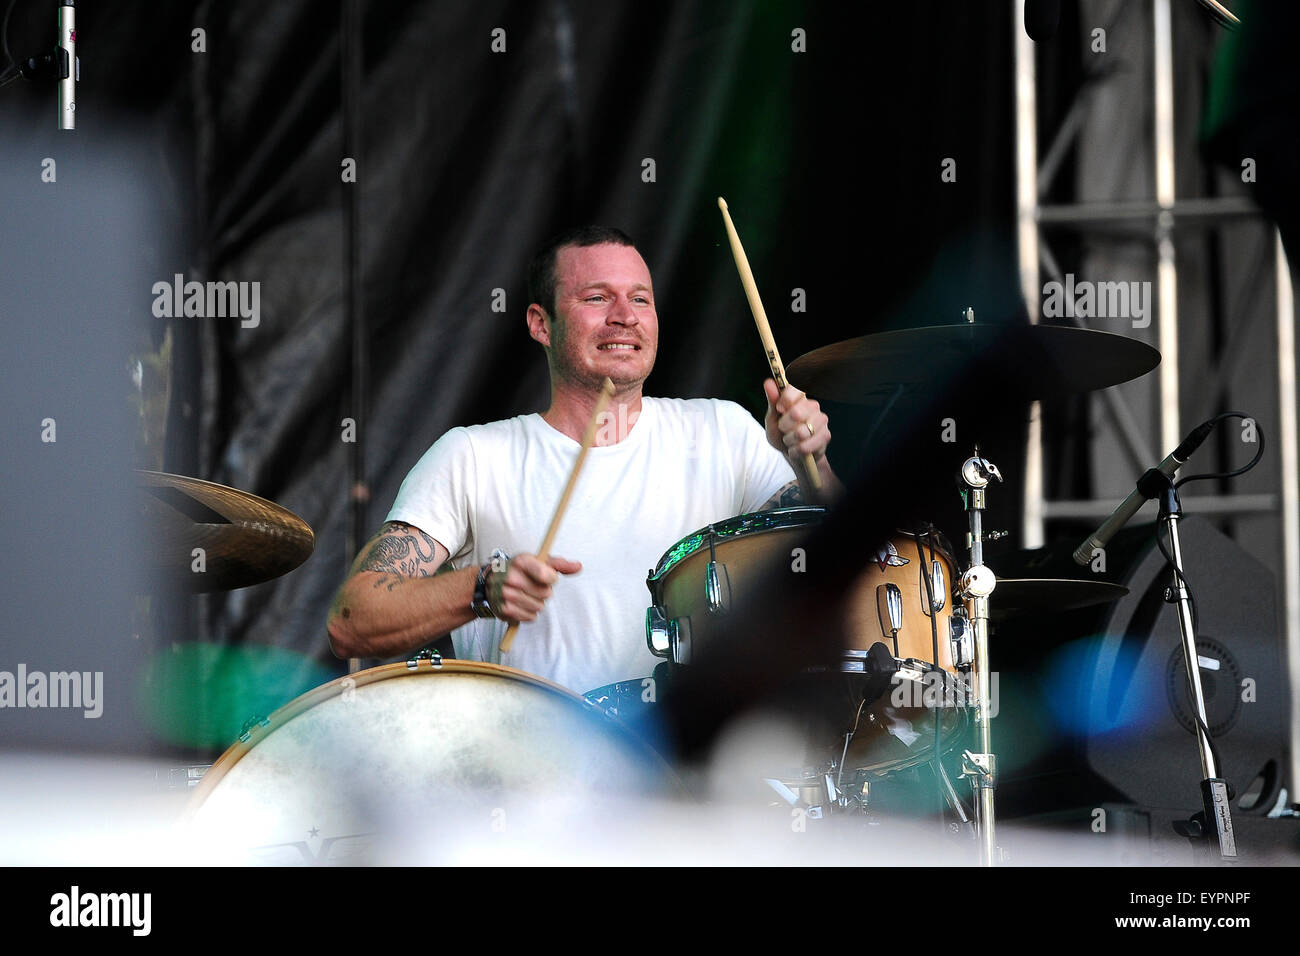 Grant Park. 01st Aug, 2015. August 01, 2015. - Delta Spirit performing live during the Lollapalooza Festival 2015 - Stock Image